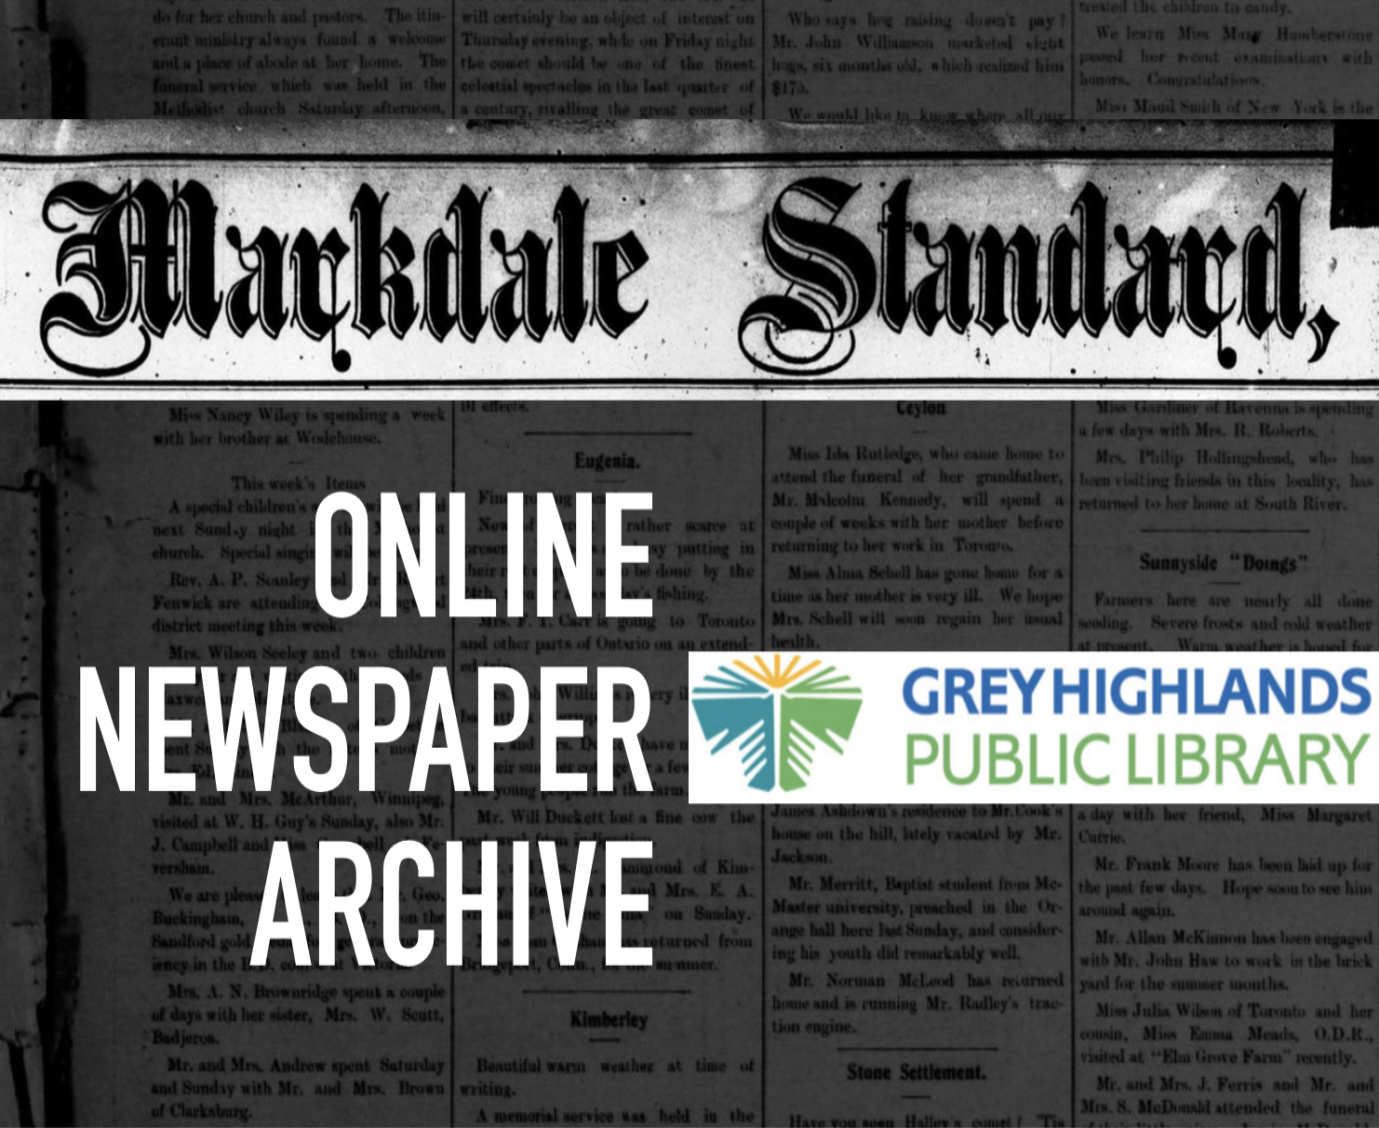 SGM - Markdale Standard Online Archive